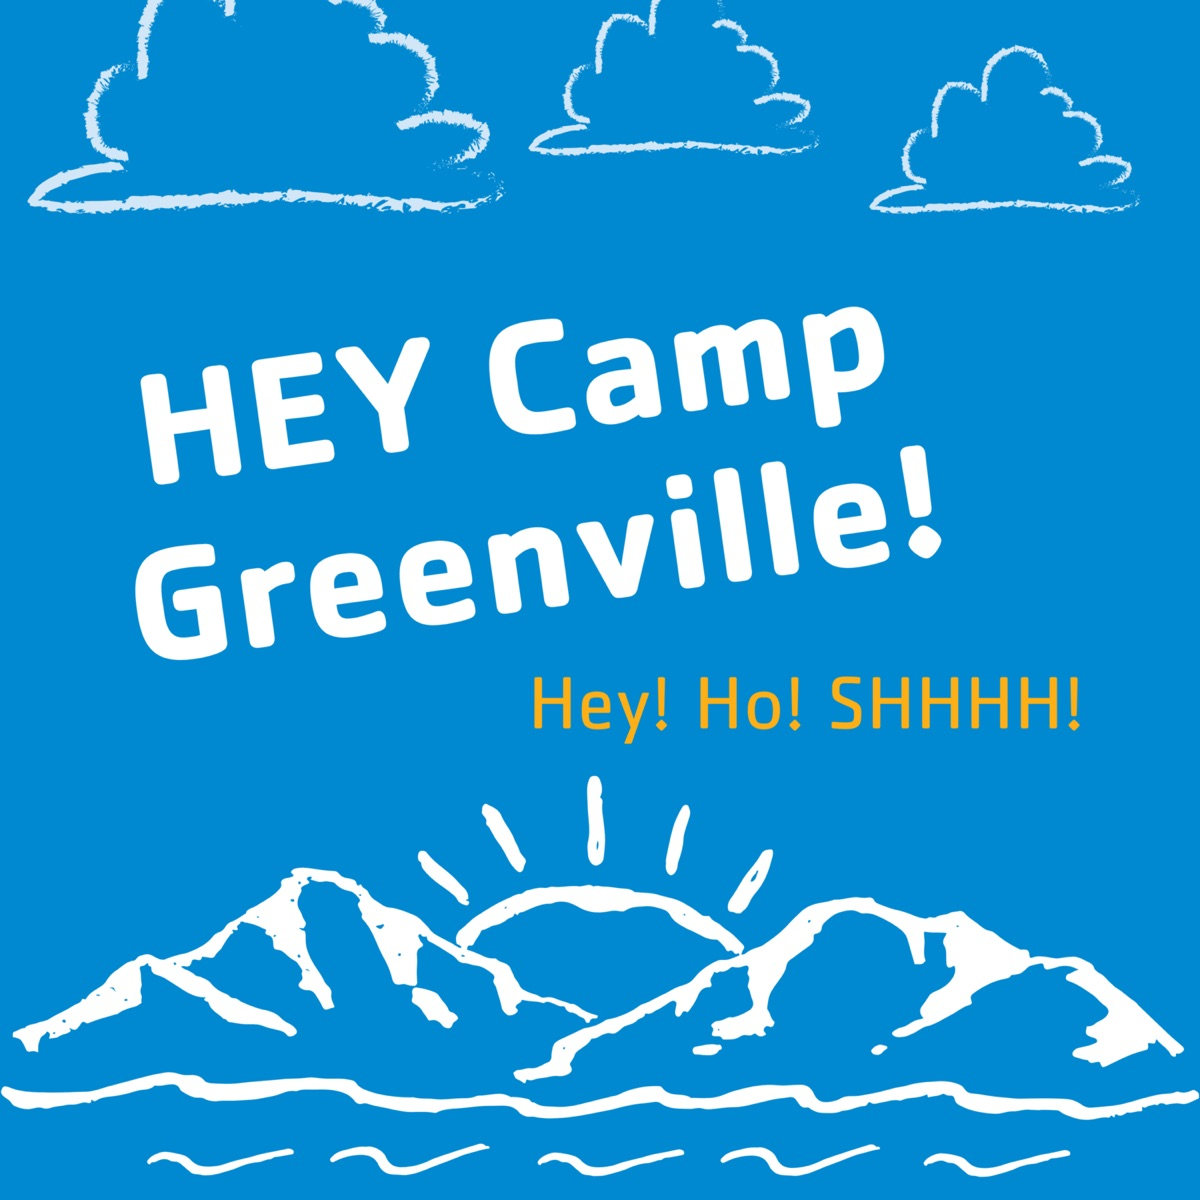 Hey Camp Greenville!